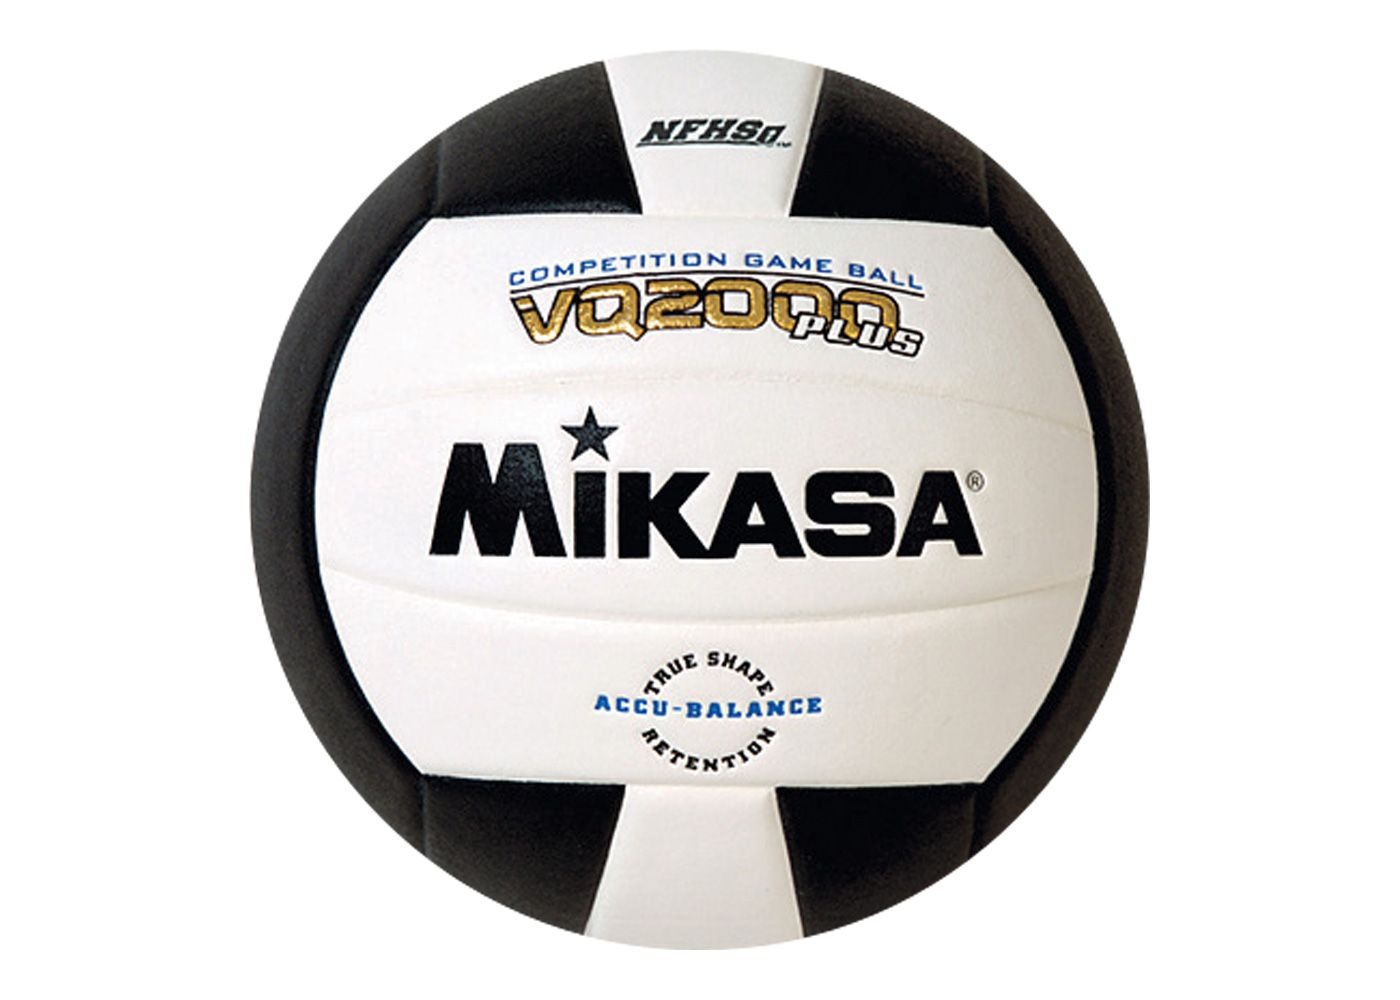 Mikasa VQ2000 Plus NFHS Competition Indoor Volleyball